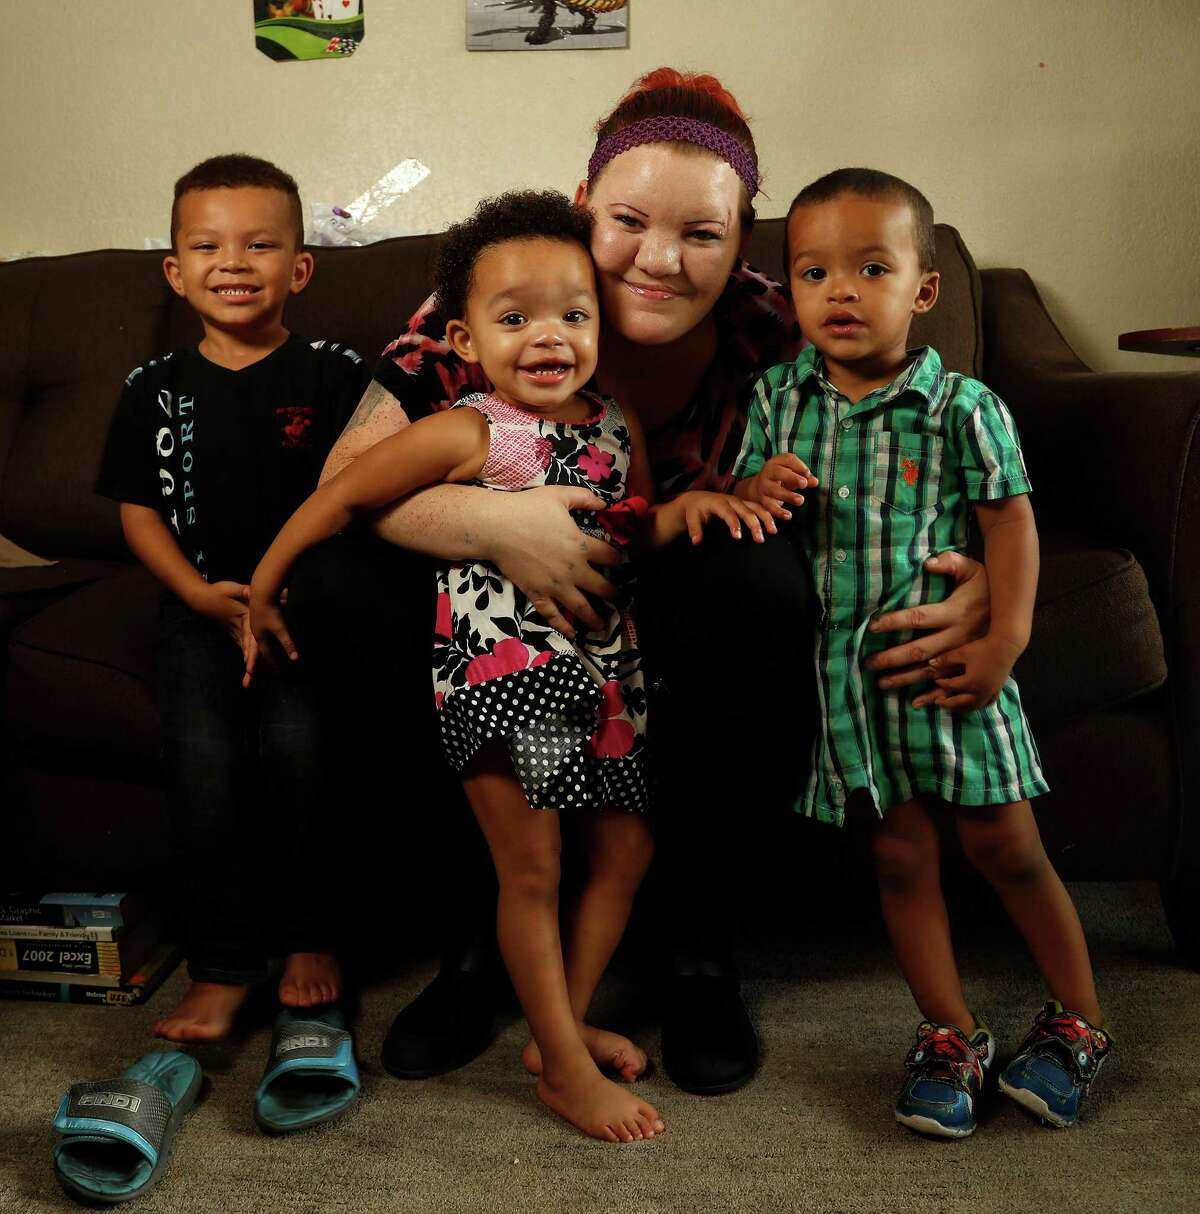 Tanya Raines, with her children Robert Hunt IV, 5, and twins Sophia and Brandon Hunt, 2, is among the 58,000 residents who so far have applied for a voucher from the Houston Housing Authority. Applicants are chosen by a lottery.